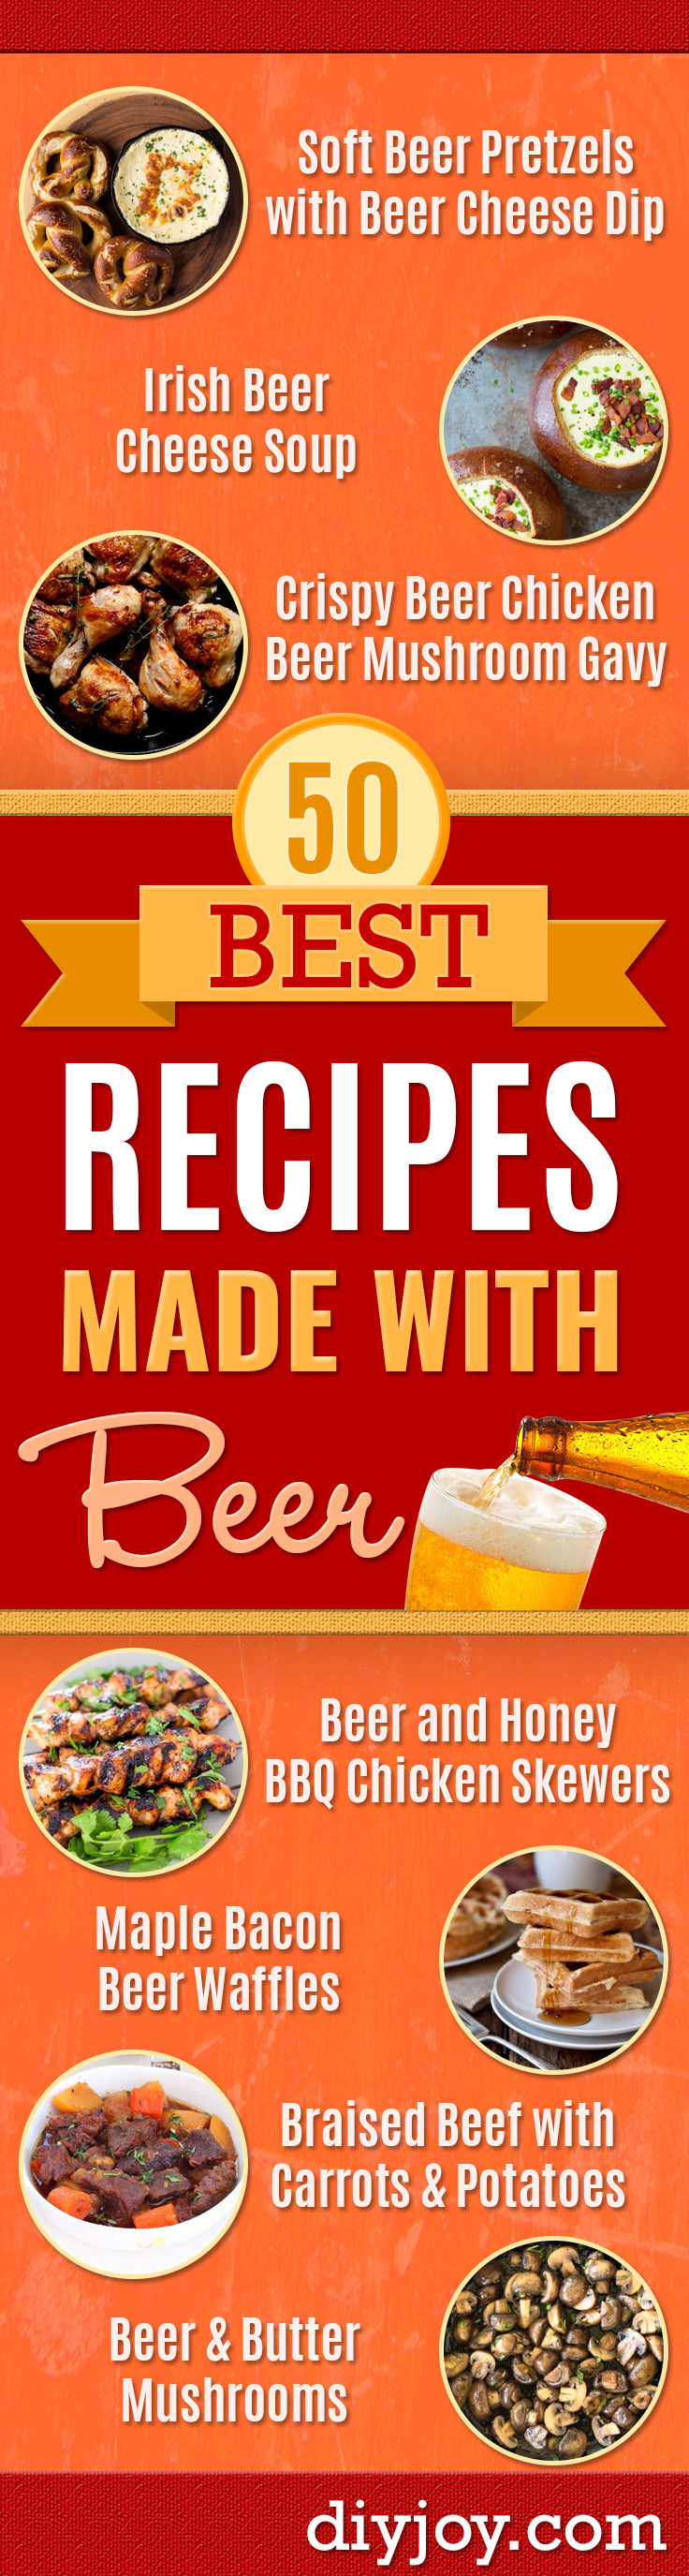 Best Recipes Made With Beer - Easy Dinner, Lunch and Snack Recipe Ideas Made With Beer - Food for the Slow Cooker and Crockpot, Meat and Chicken Dishes, Appetizers, Homemade Pretzels, Summer BBQ Sauces and PArty Food Ideas http://diyjoy.com/best-recipes-made-with-beer